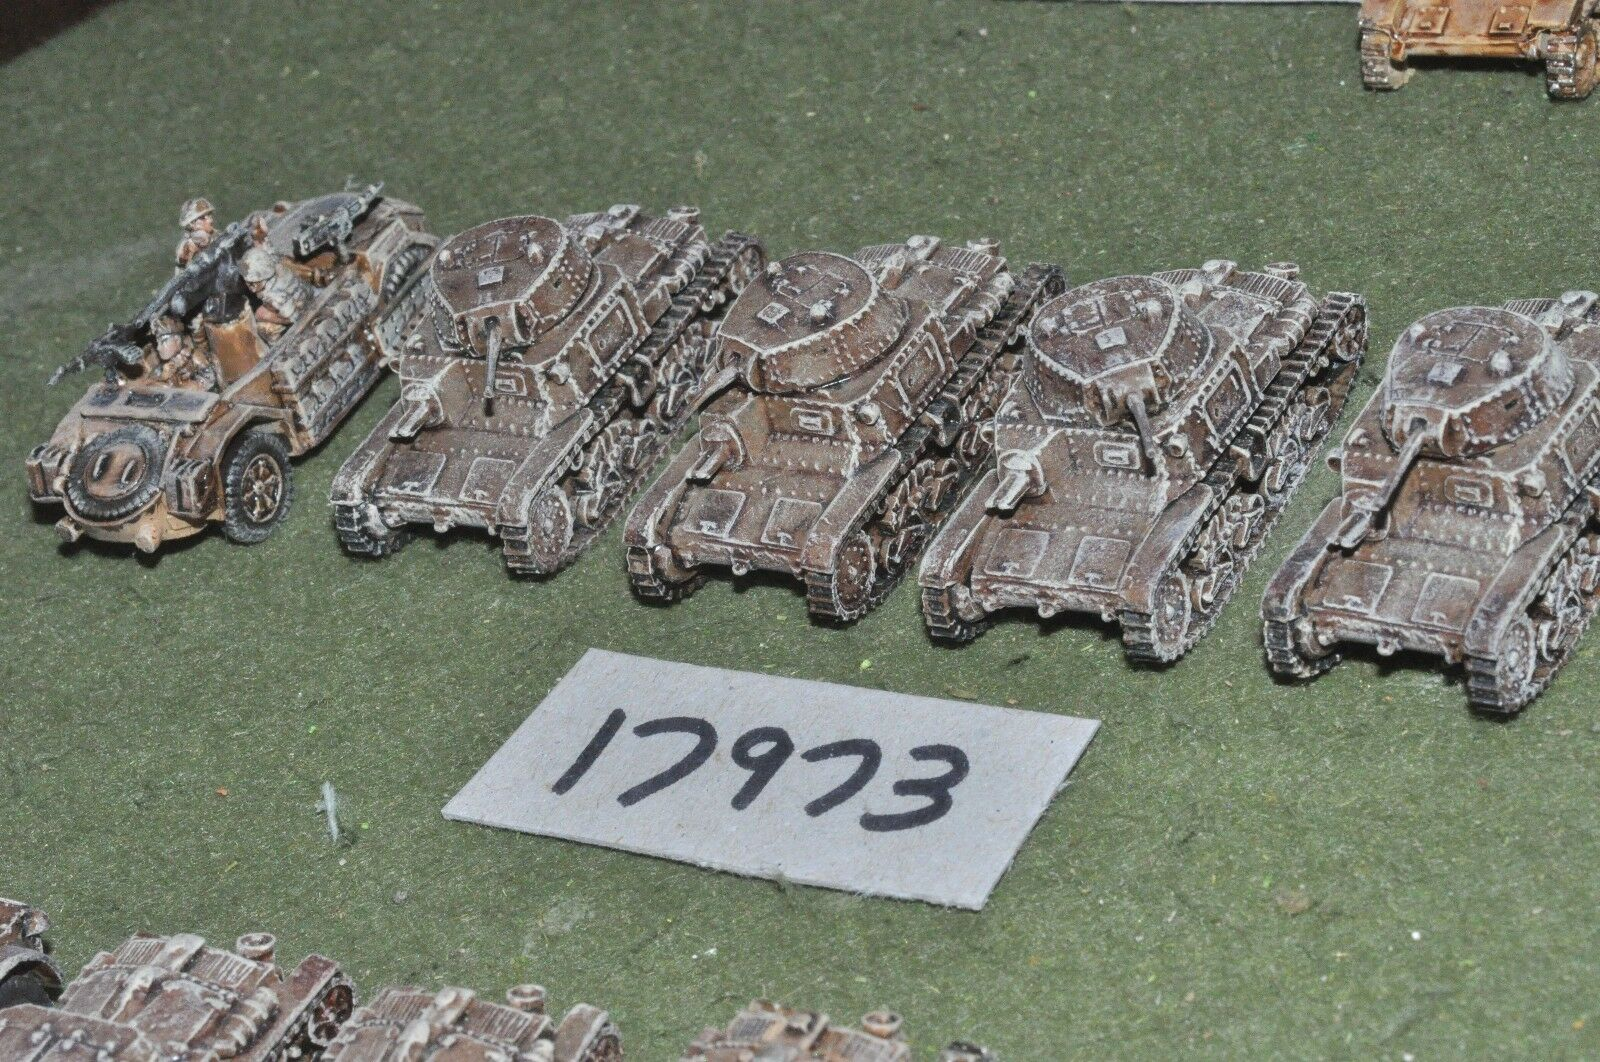 15mm ww2 n. african campaign vehicles (as photo) (17973)